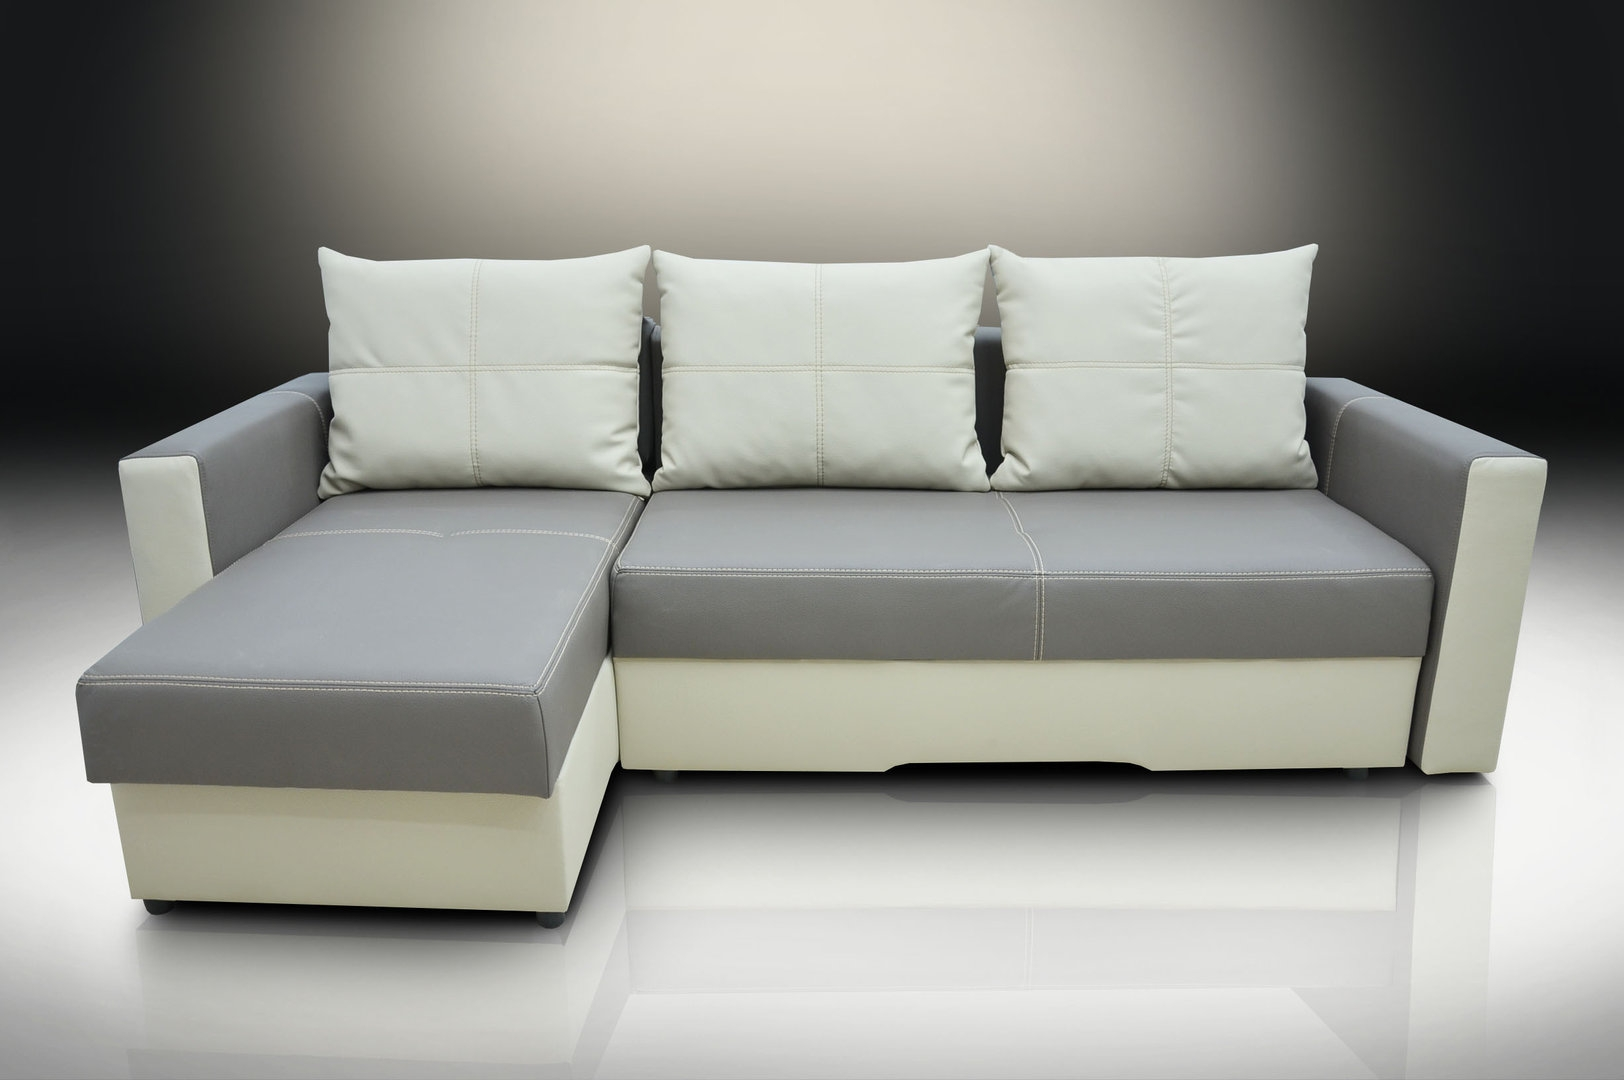 Corner Couches For Sale 15 Inspirations Bristol Sofas Sofa Ideas